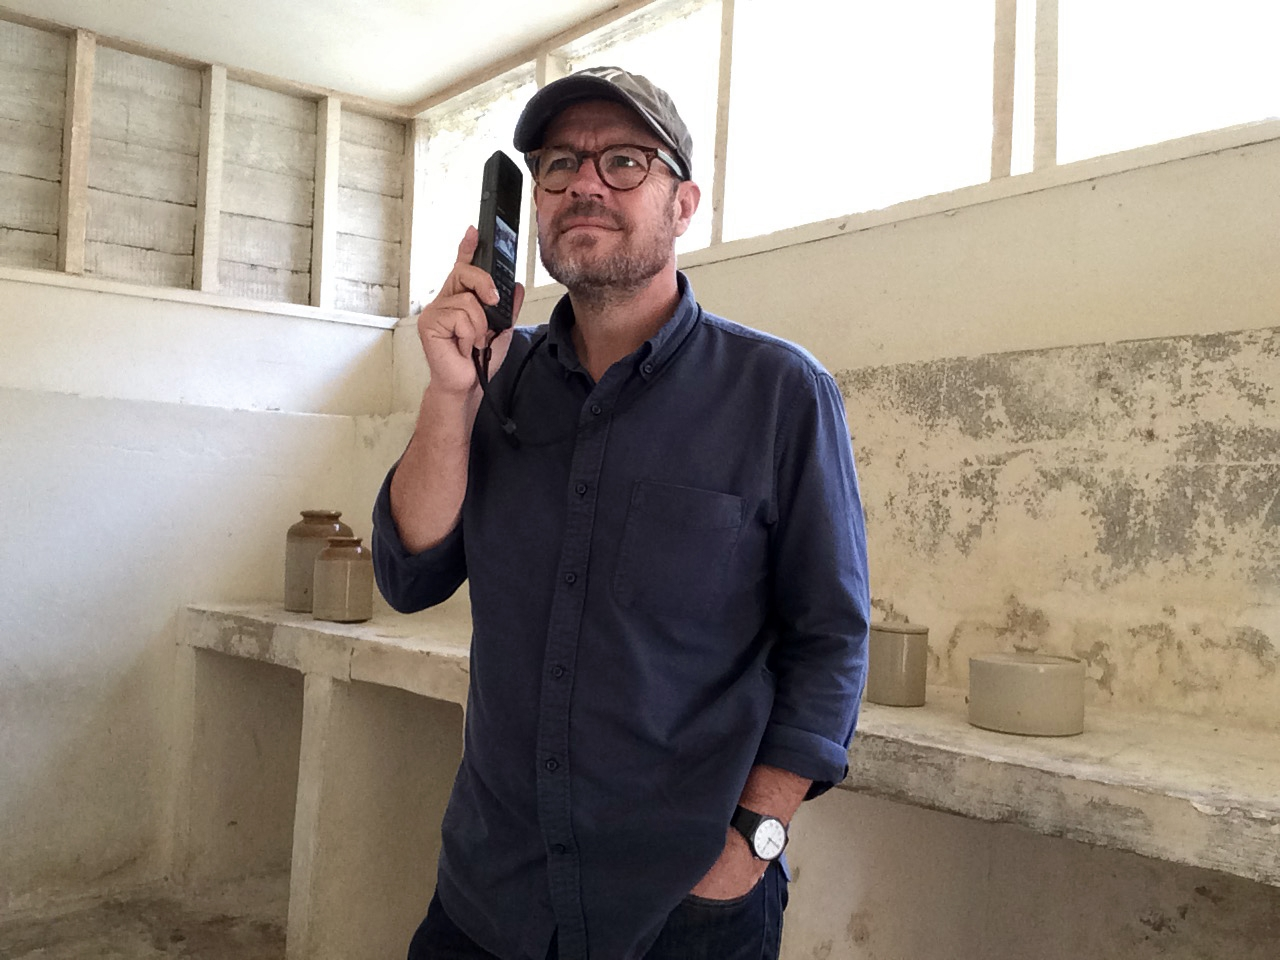 Man hold audio tour handset to his ear in a sparce and white painted dairy